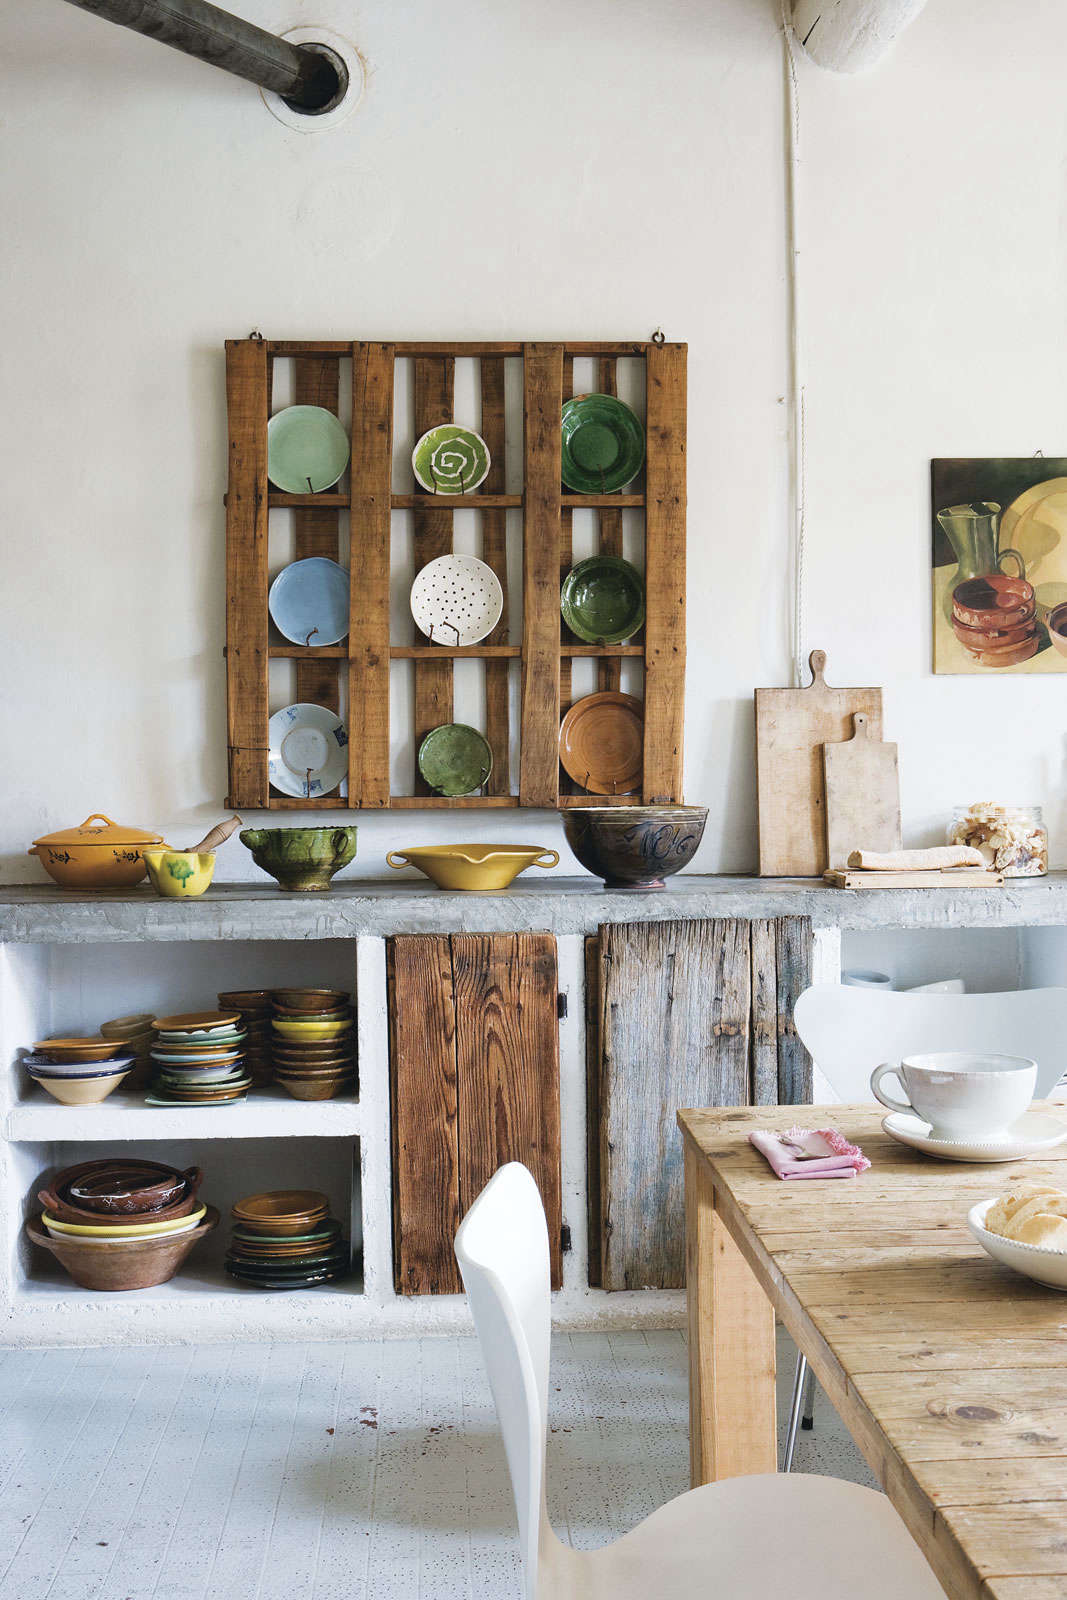 German designer Katrin Arens own kitchen in Italy from Slow Design: Pallet as Plate Rack by Katrin Arens.